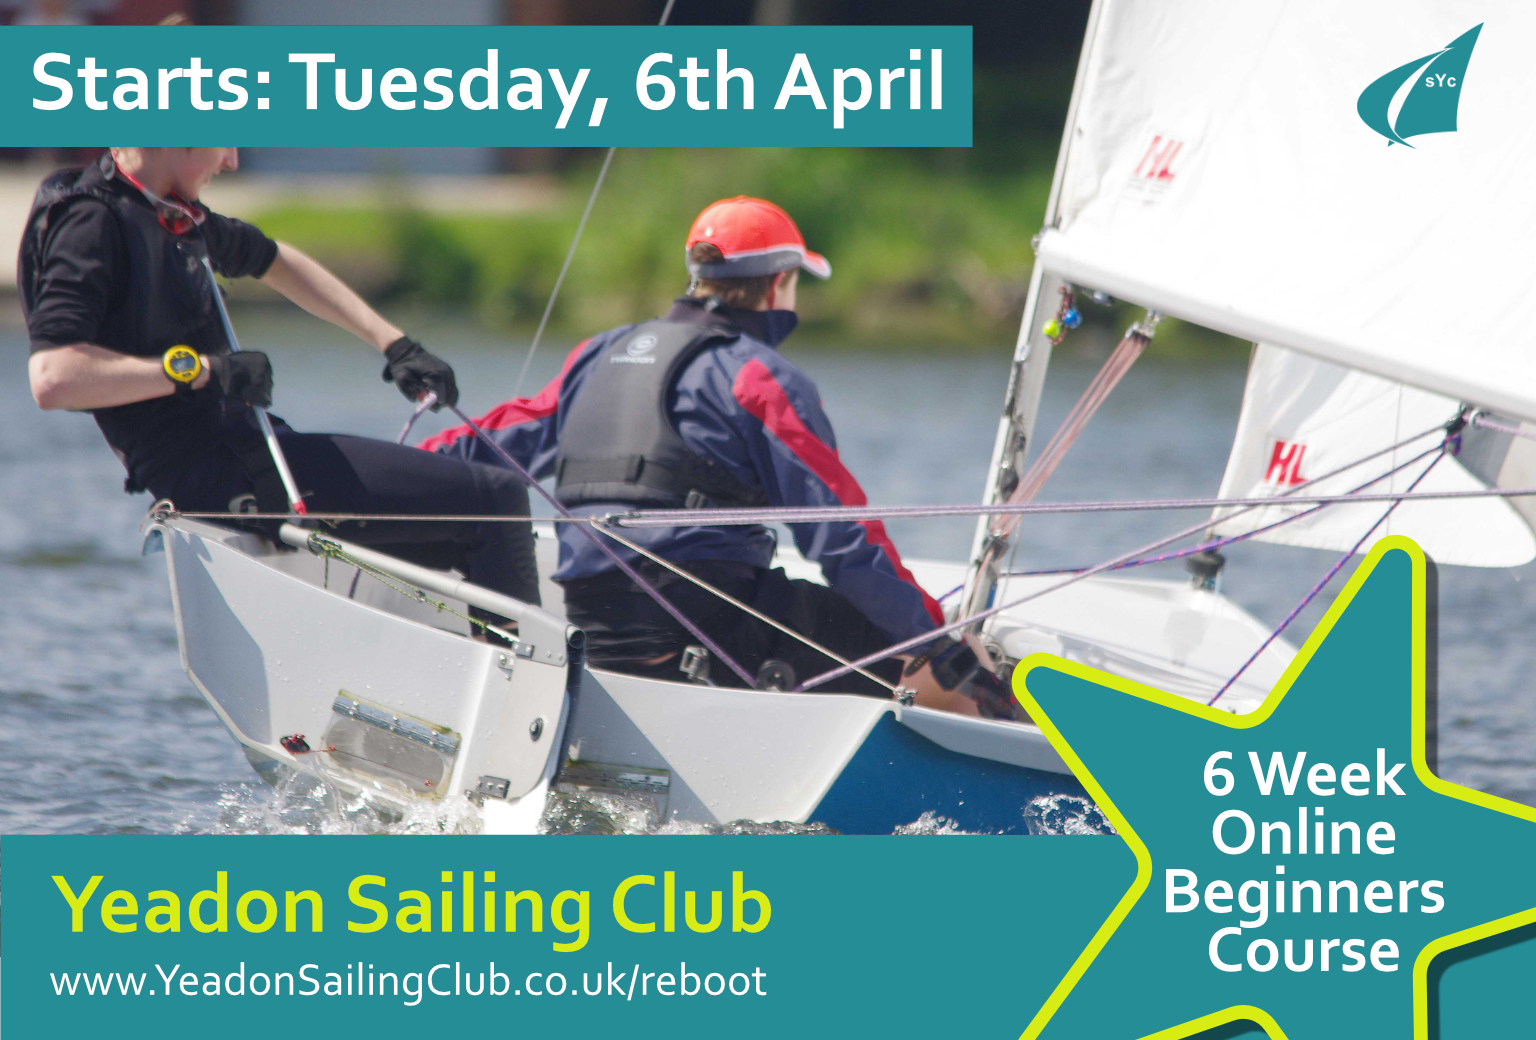 6 week sailing course starting 6th April 2021